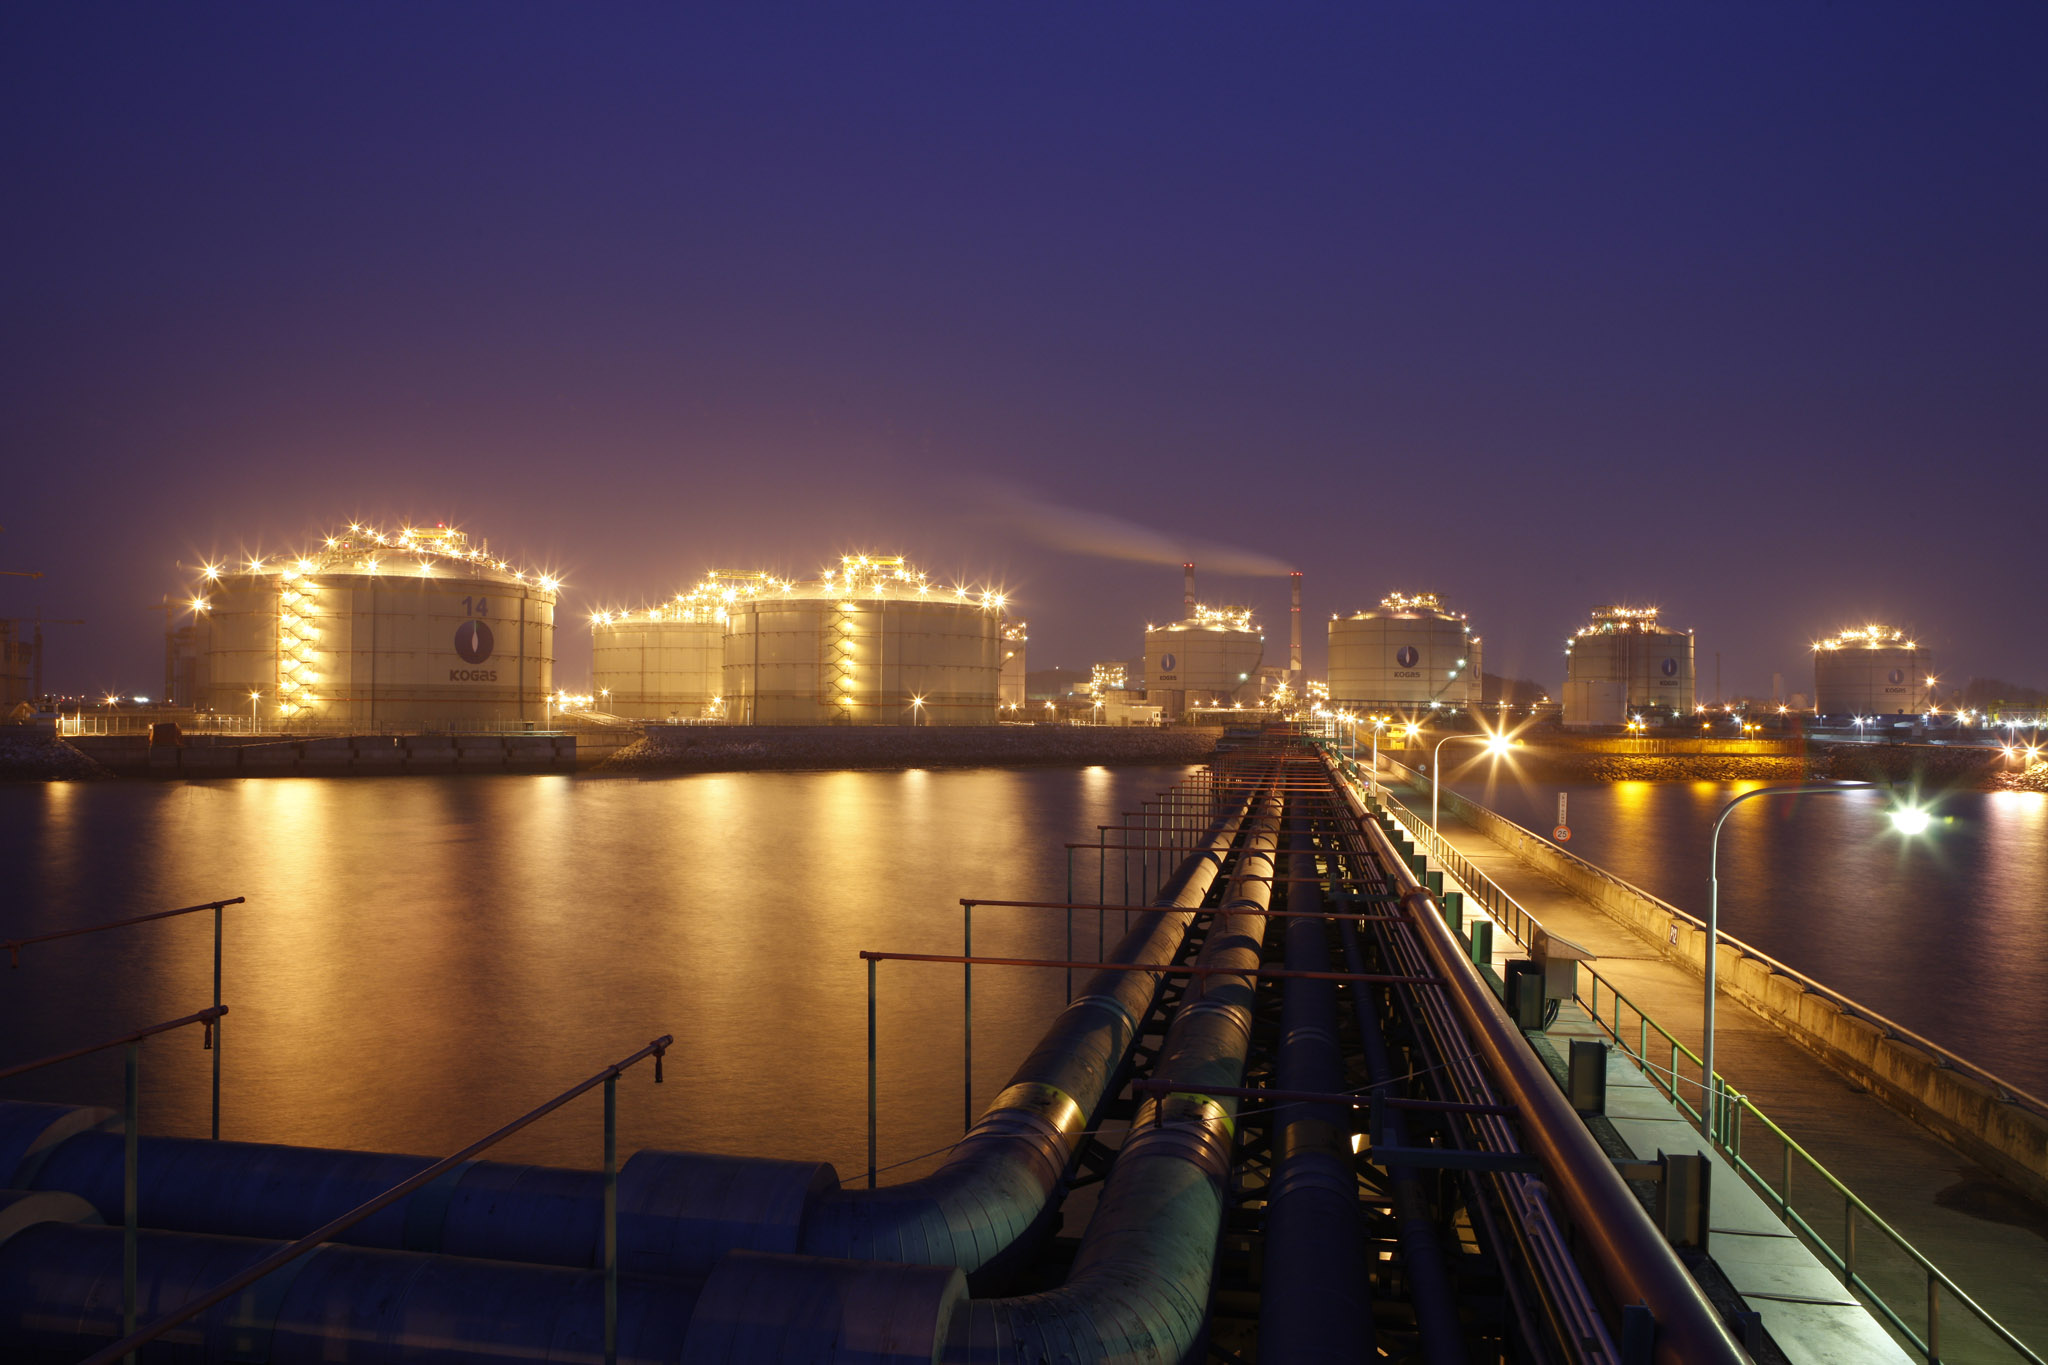 Shell_South-Gas_Mitsubishi_Basra-Gas_LNG_Export_Terminal_Saipem_FEED_Project